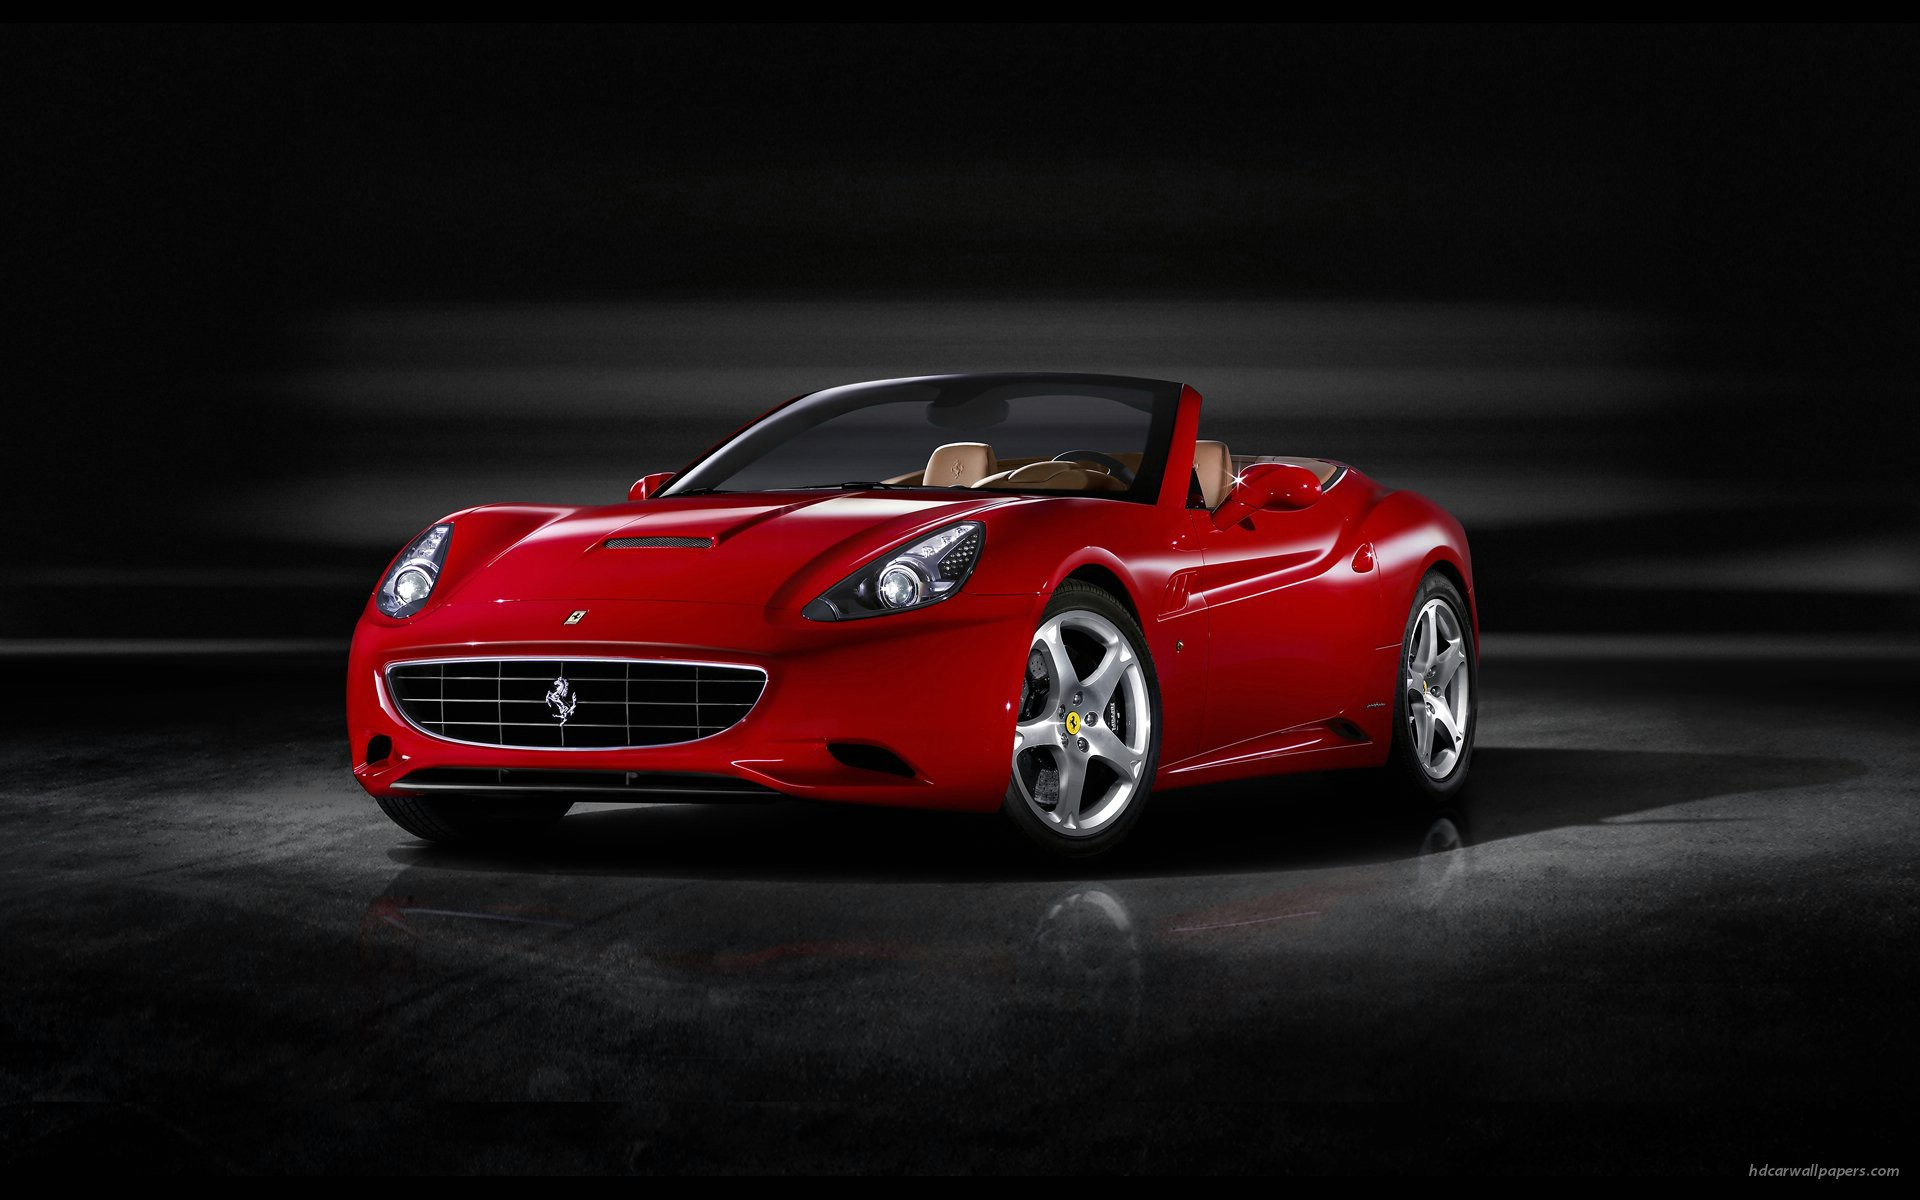 2009 Ferrari California 6 351.31 Kb